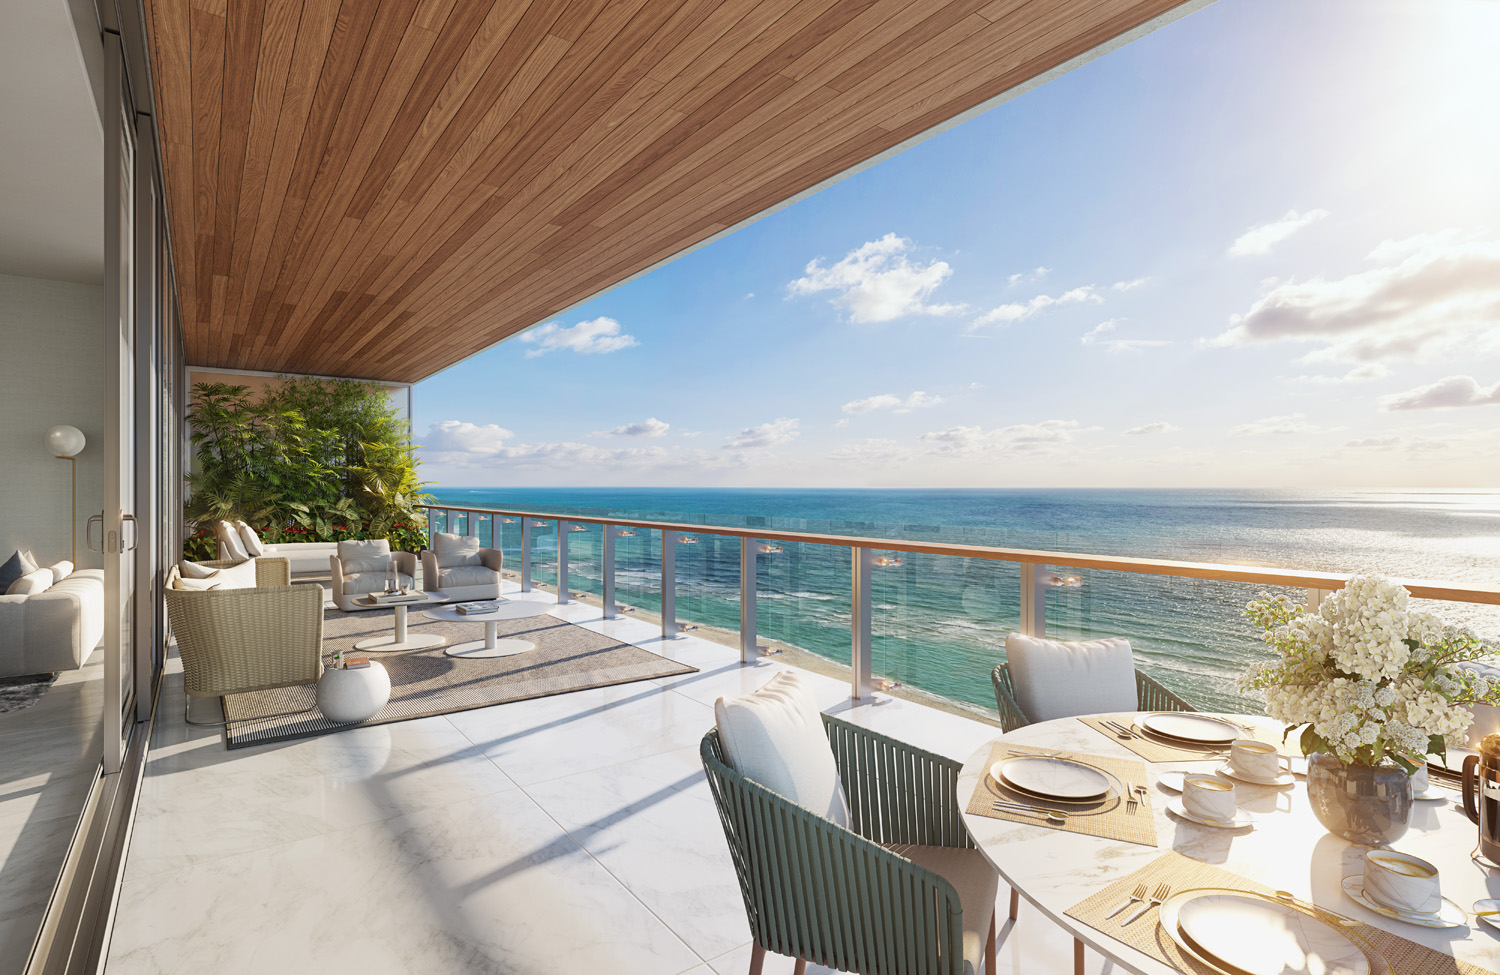 Exterior view of 57 Ocean residence balcony with ocean view in Miami. Has wood ceiling, white floors and coffee table.